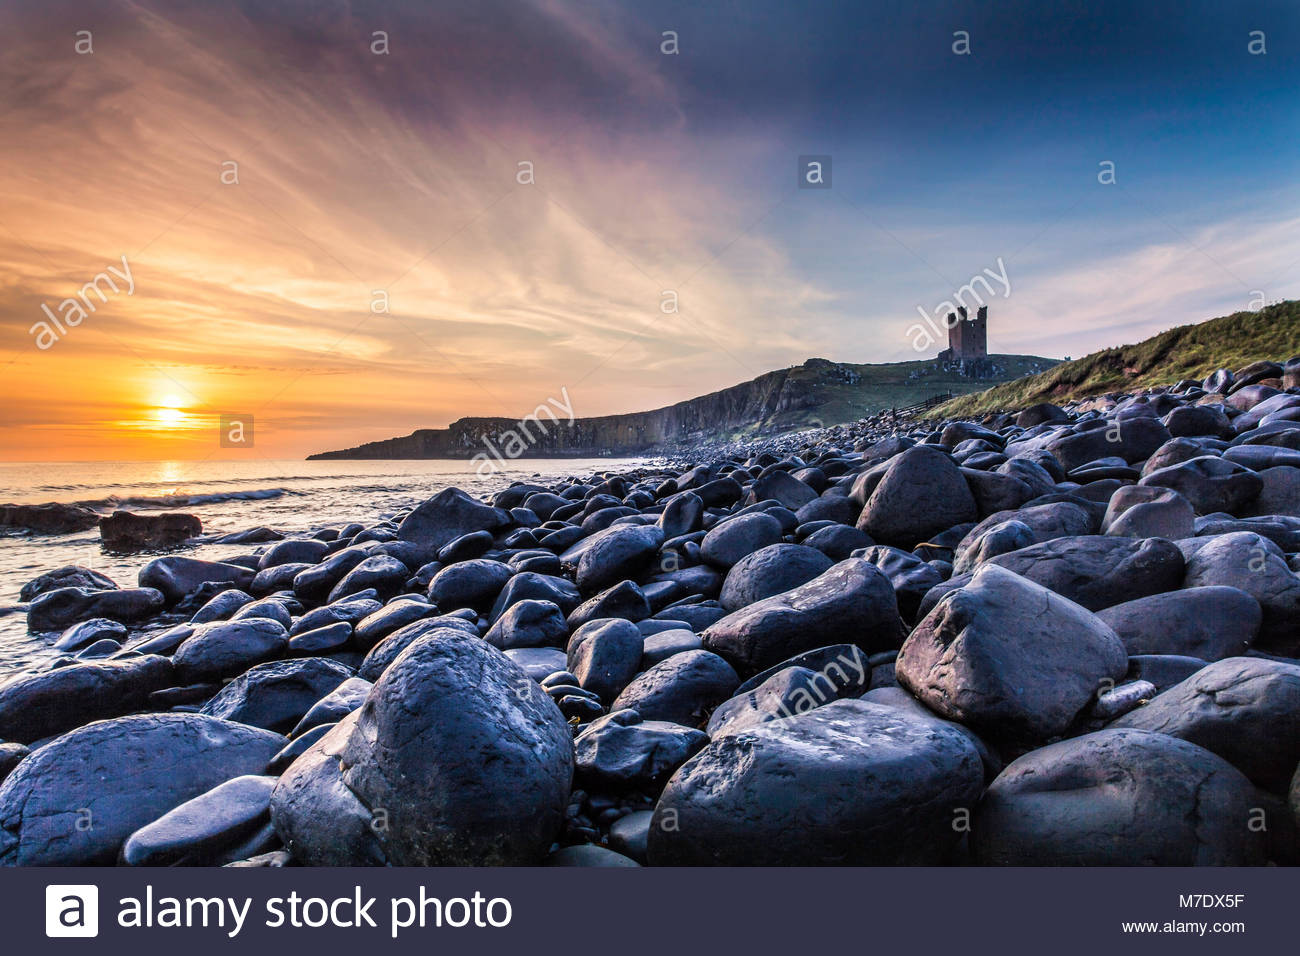 Dunstanburgh castle in Northumberland at dawn. - Stock Image